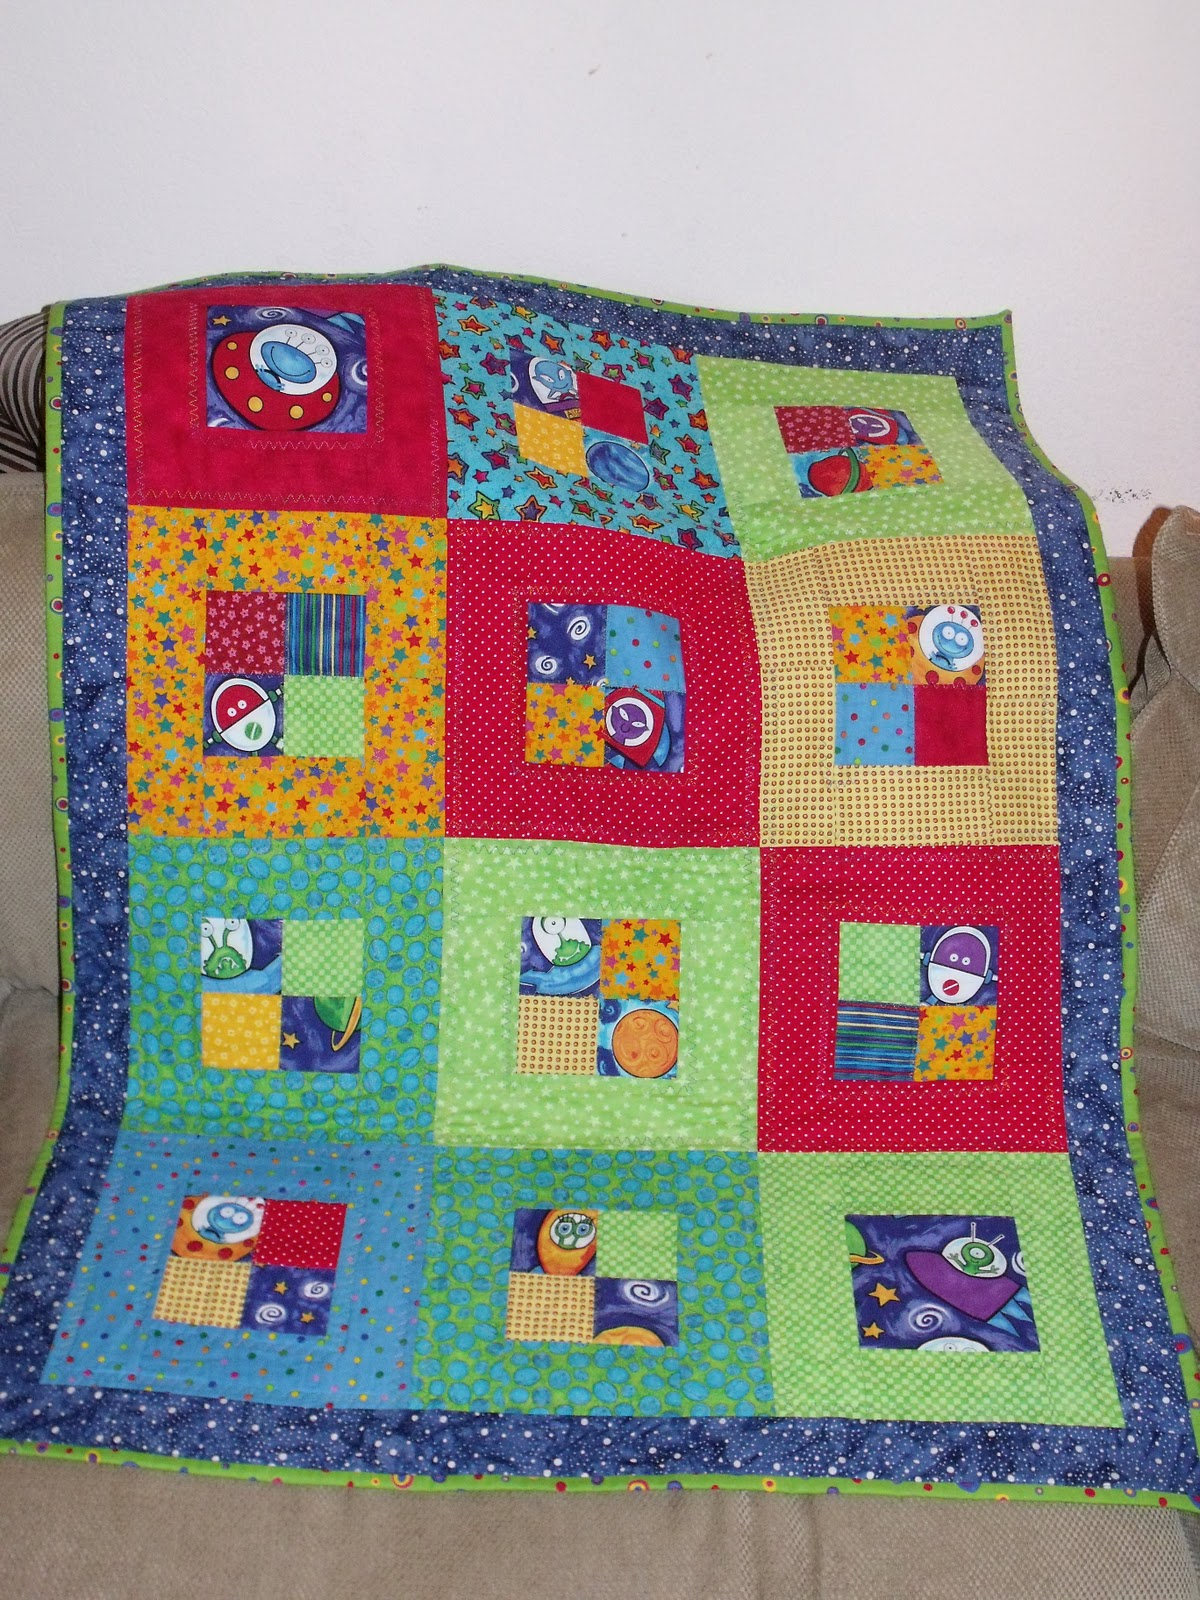 comfree quilt pattern. patchwork quilt a vector. baby quilt.